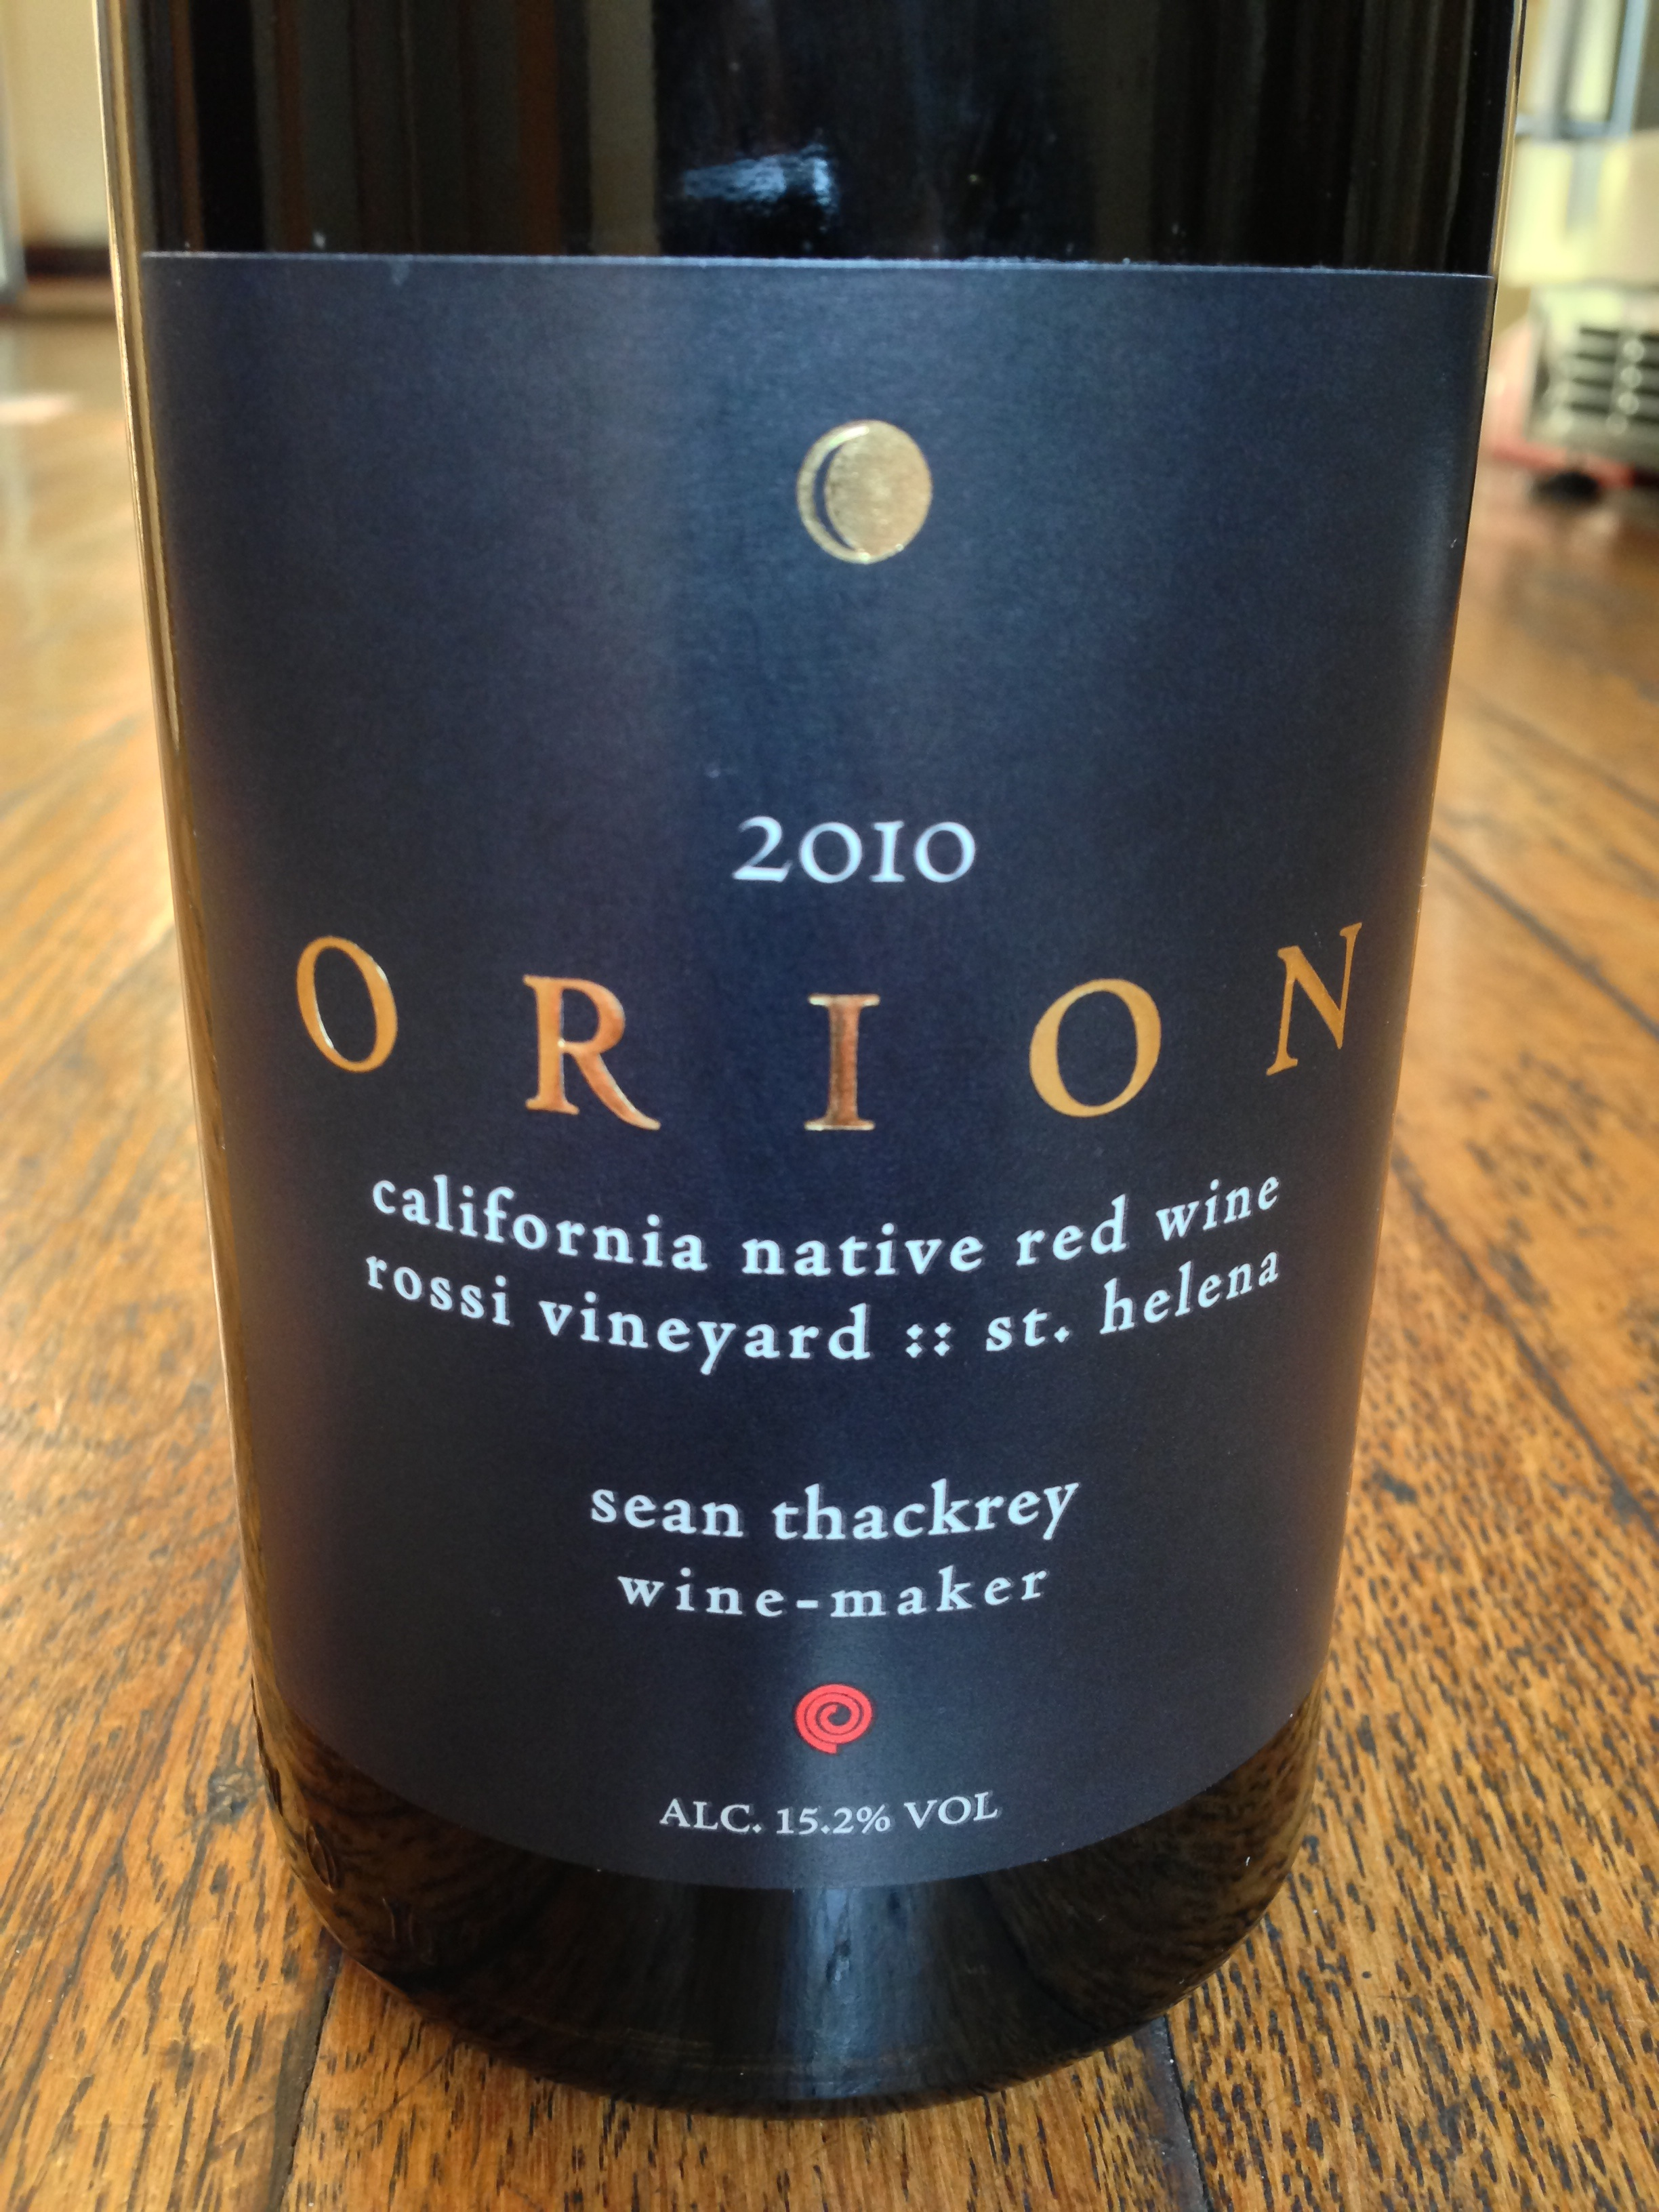 Sean Thackrey Orion 2010 California Native Wine Rossi Vineyard St Helena